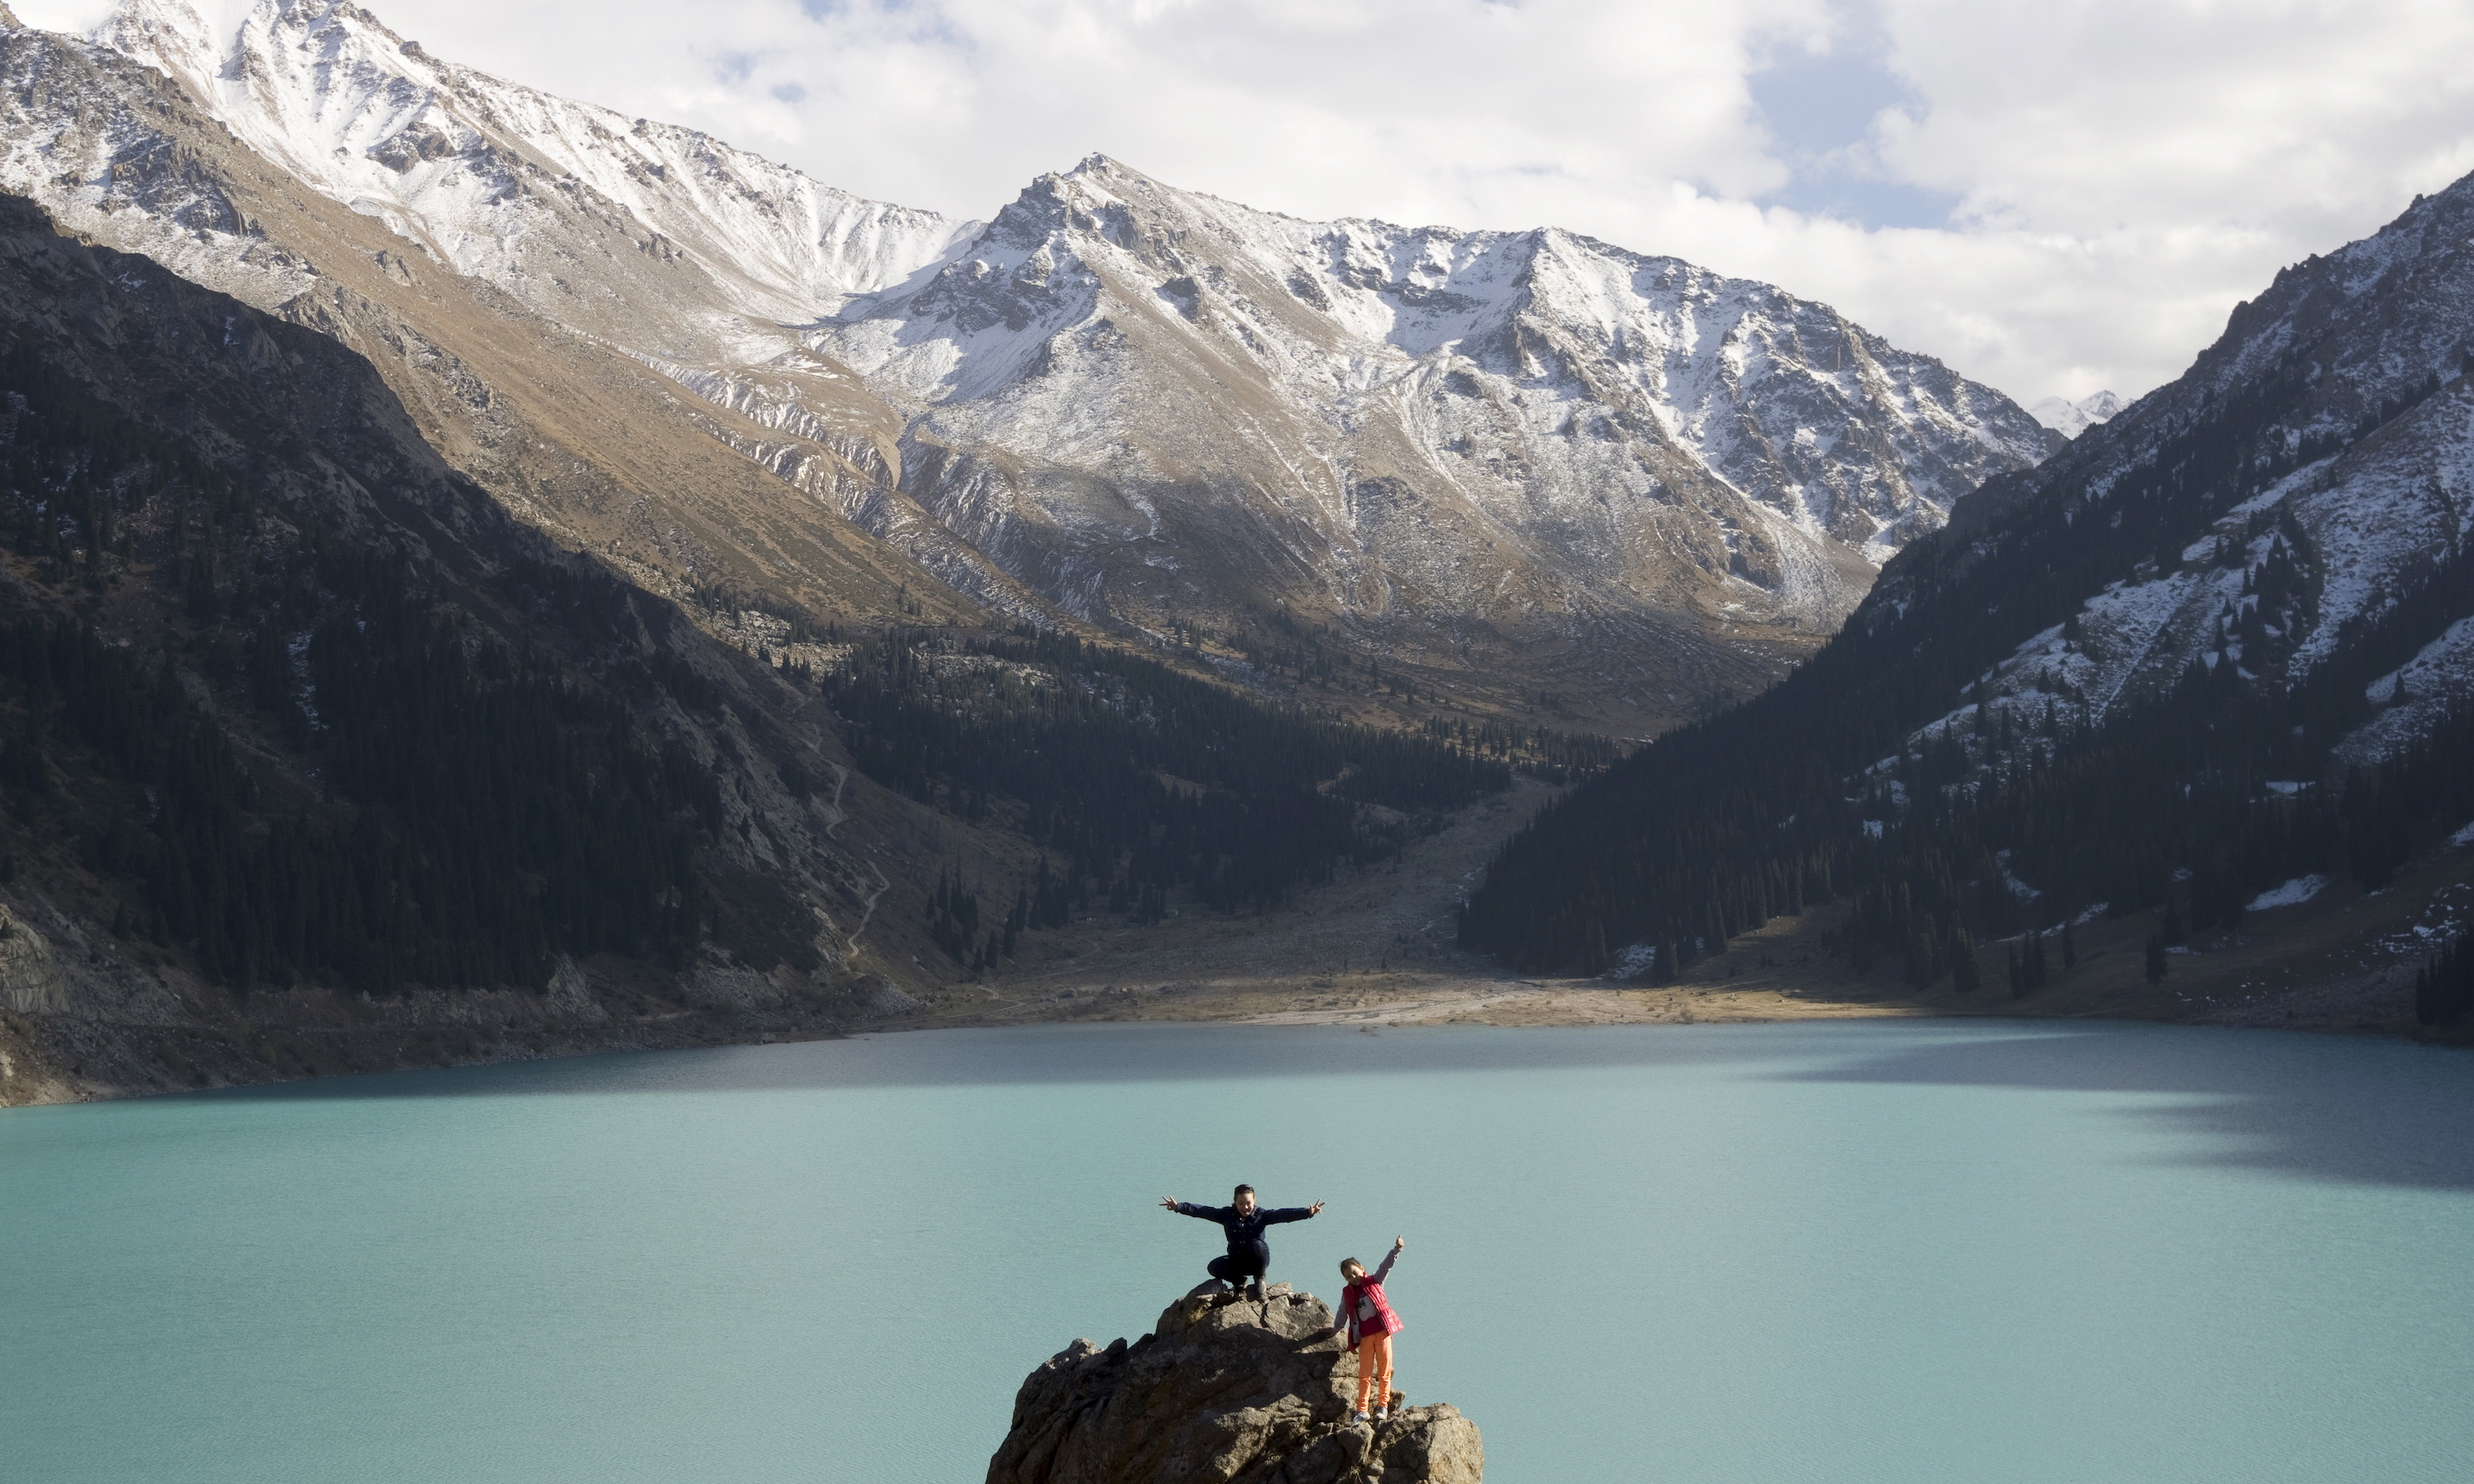 Children pose for their parents on a rock in front of the Bolshoy (Big) Almaty lake at 2,600 (8530 ft) meters above sea level at a sunny autumn day in a mountains outside Almaty, Kazakhstan, October 4, 2015.  REUTERS/Shamil Zhumatov      TPX IMAGES OF THE DAY      - RTS2Y8K